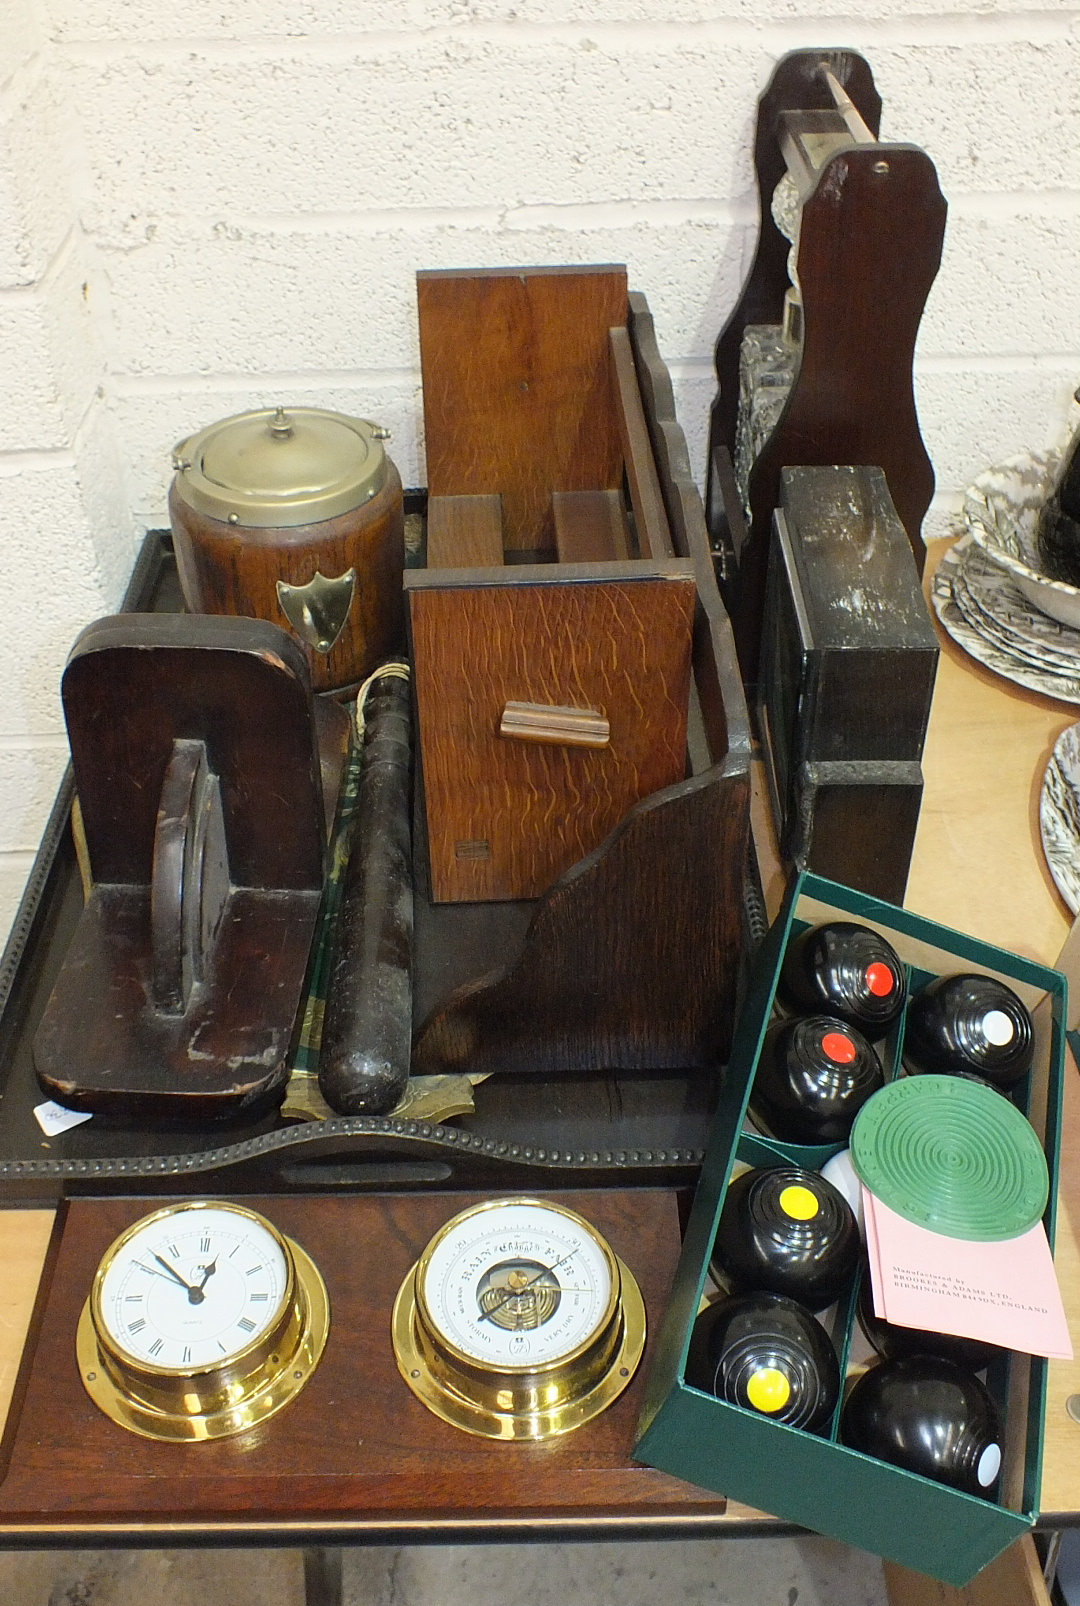 Lot 75 - A wooden truncheon, a set of B&A carpet bowls, a modern two-bottle Tantalus and other wooden items.